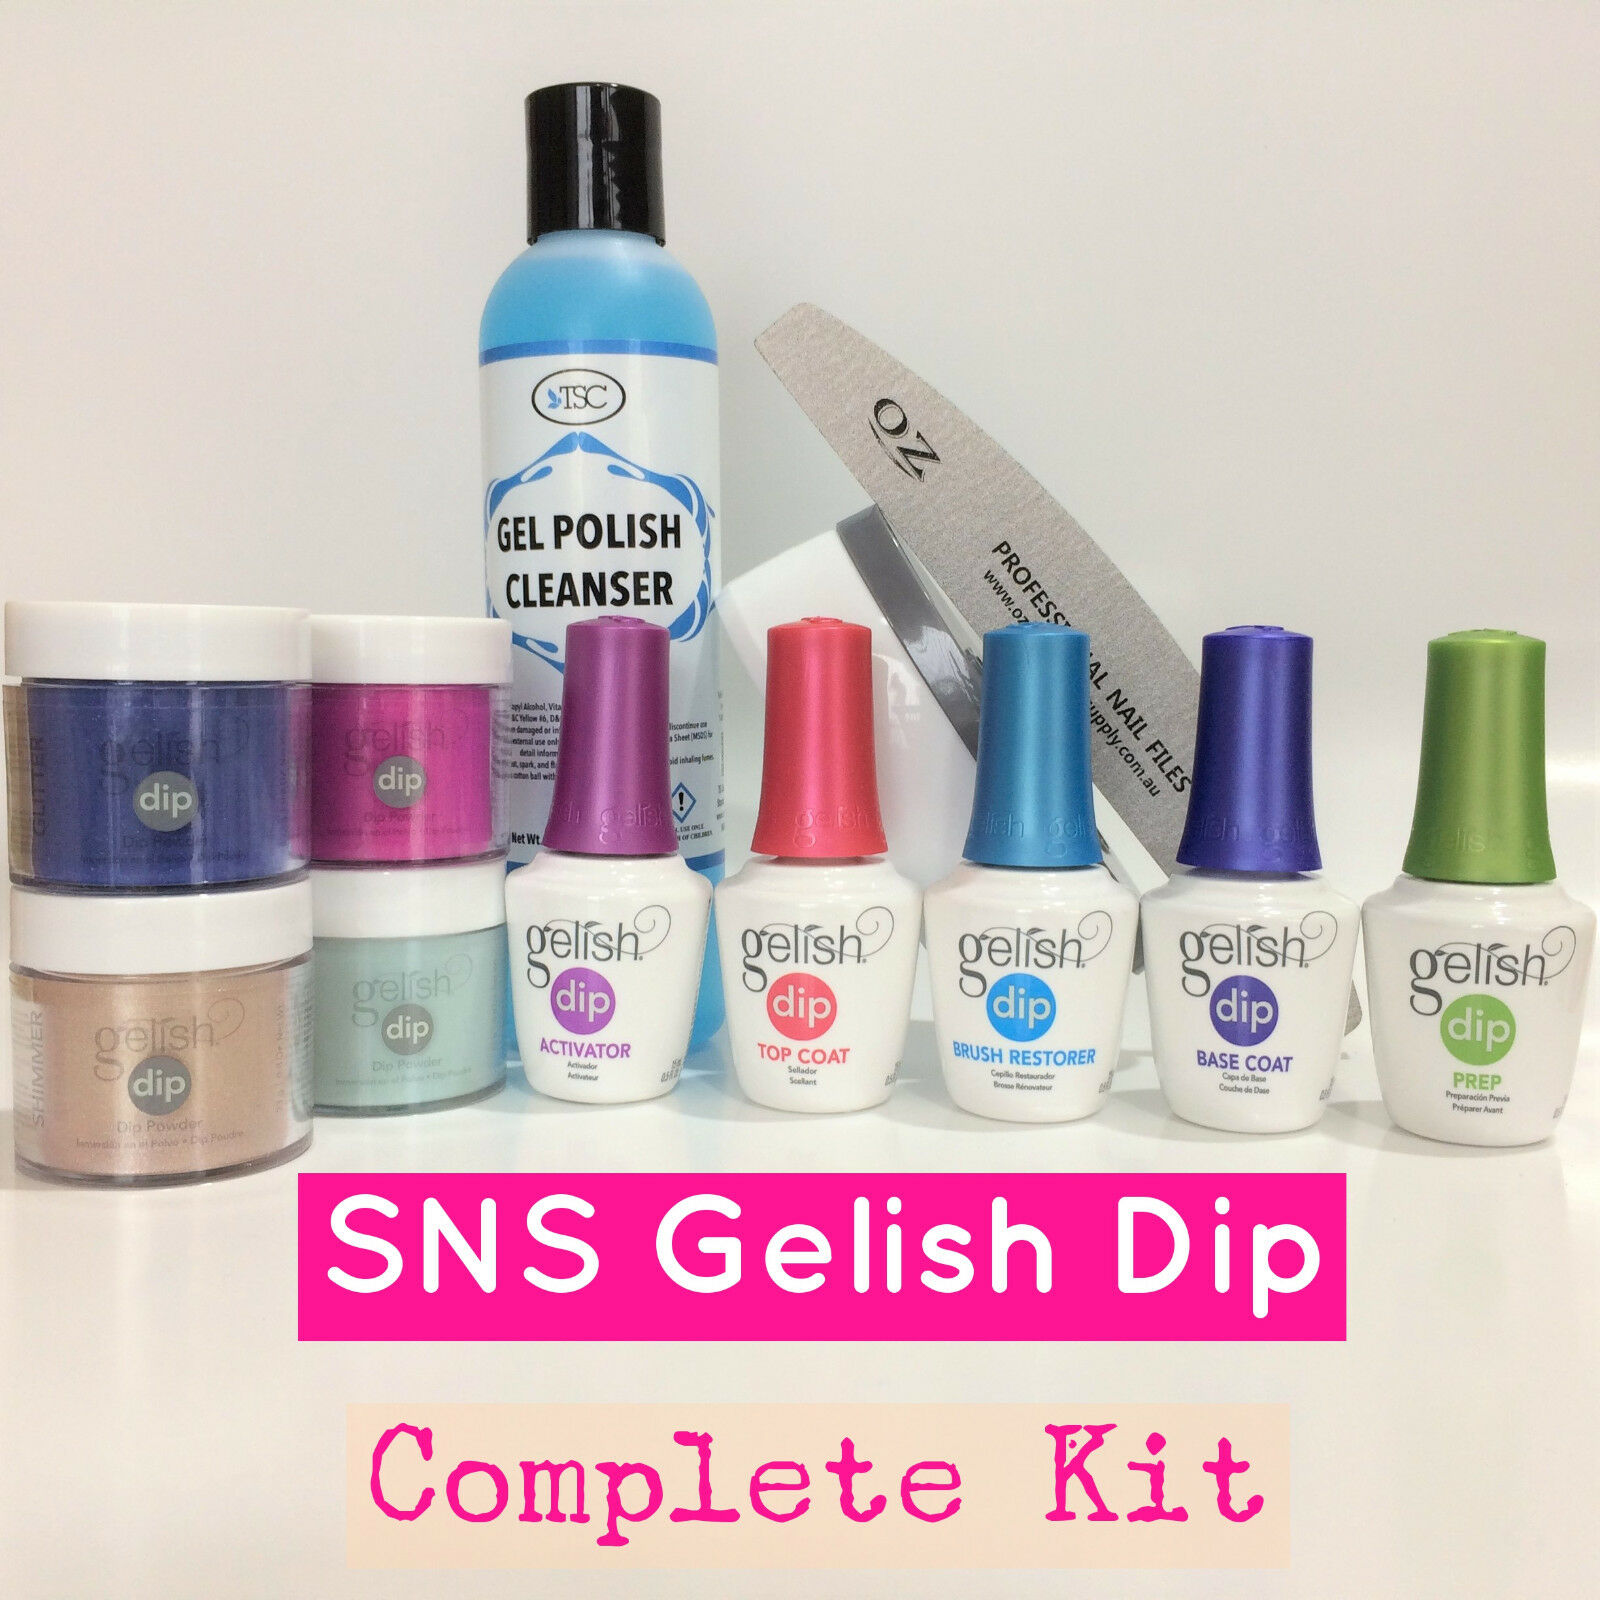 Gelish Dip SNS Liquids Nail Complete Kit Dipping Powders Choose Any ...